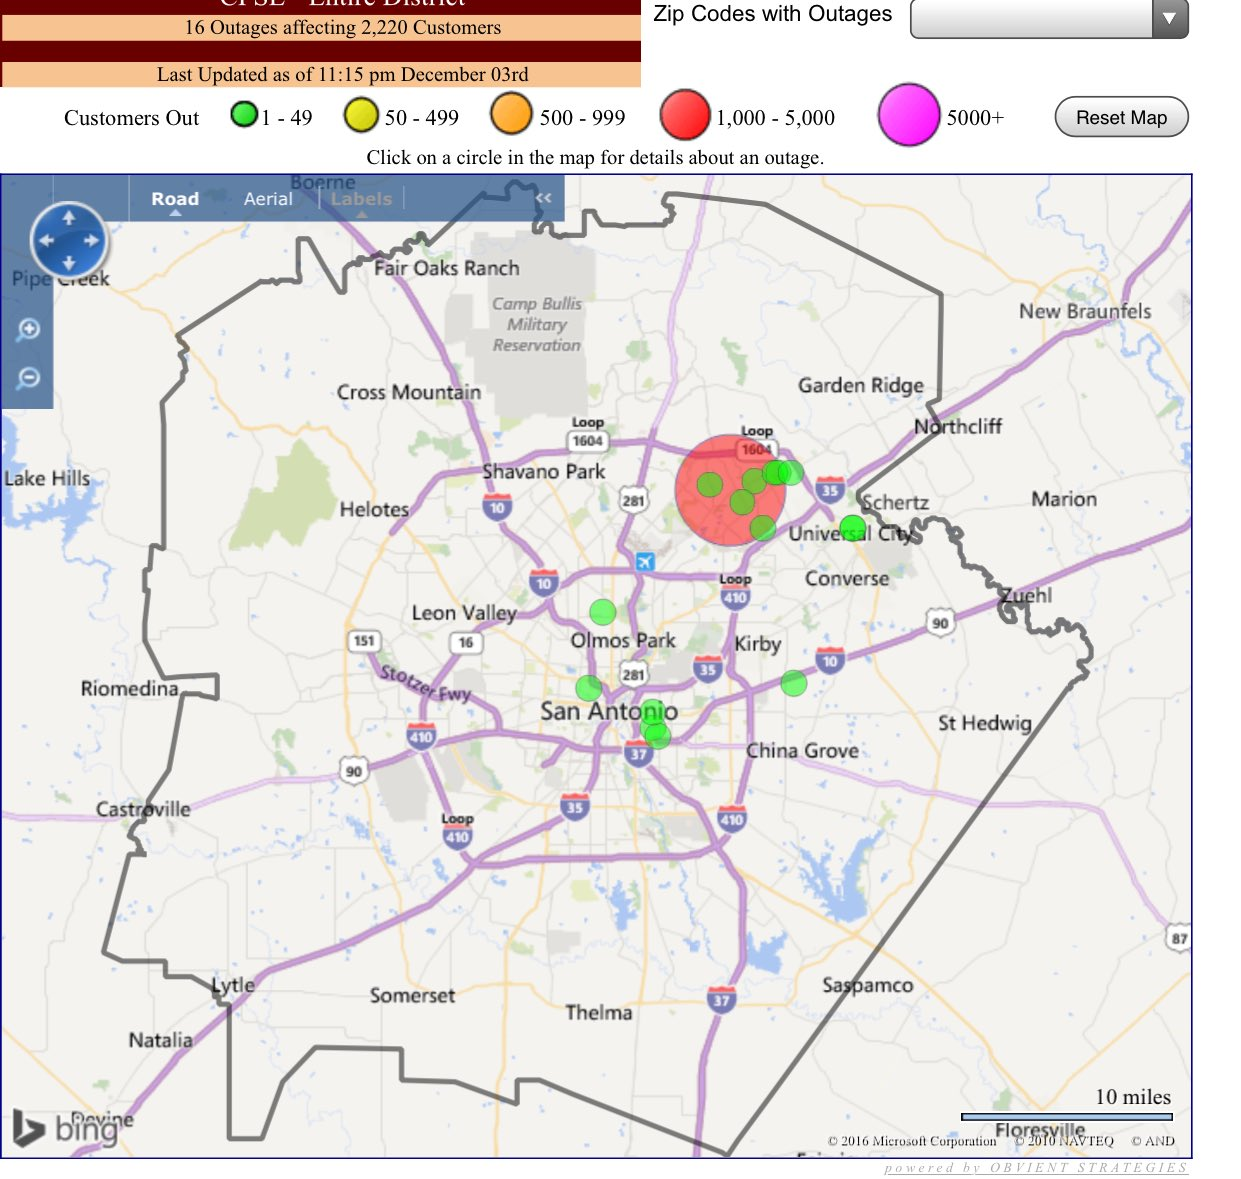 cps energy on twitter current outage map showing just over k affectedcustomers crews are out working as quickly  safely as possible. cps energy on twitter current outage map showing just over k